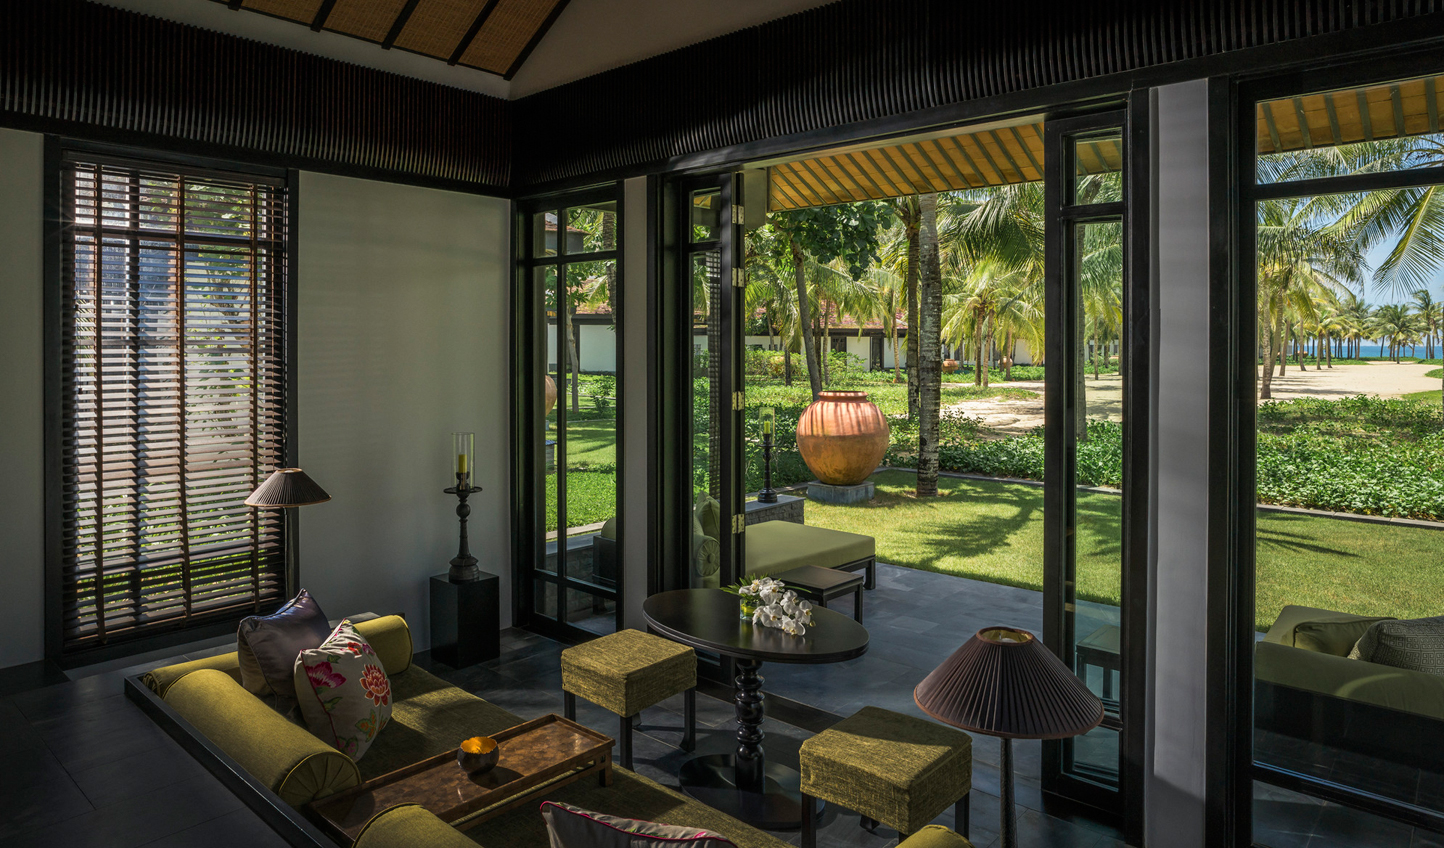 Luscious garden views from your private villa